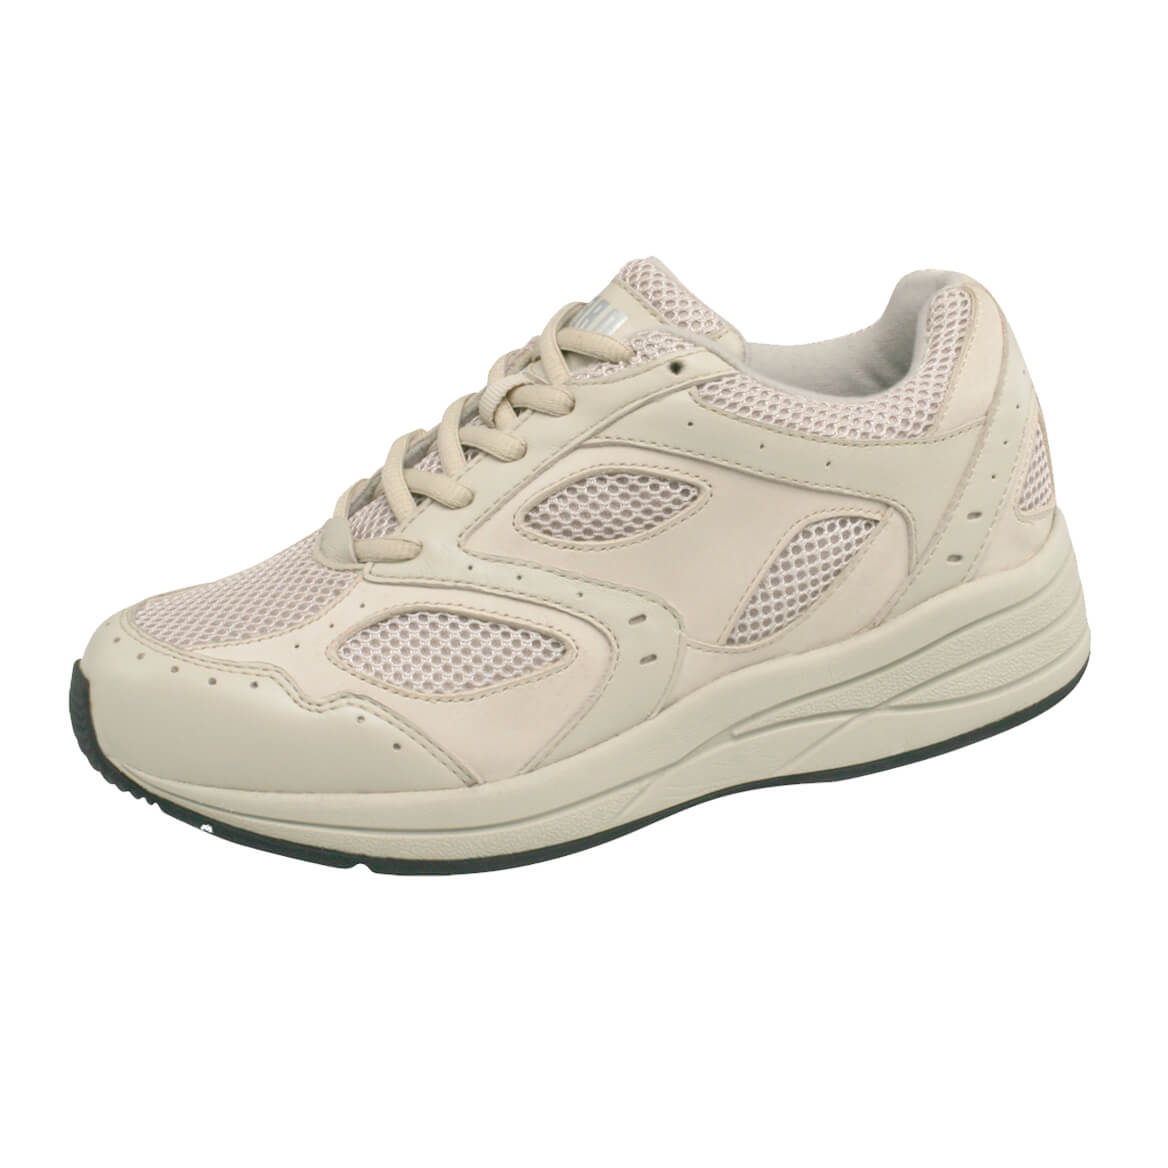 Drew® Flare Women's Walking Shoe-363604